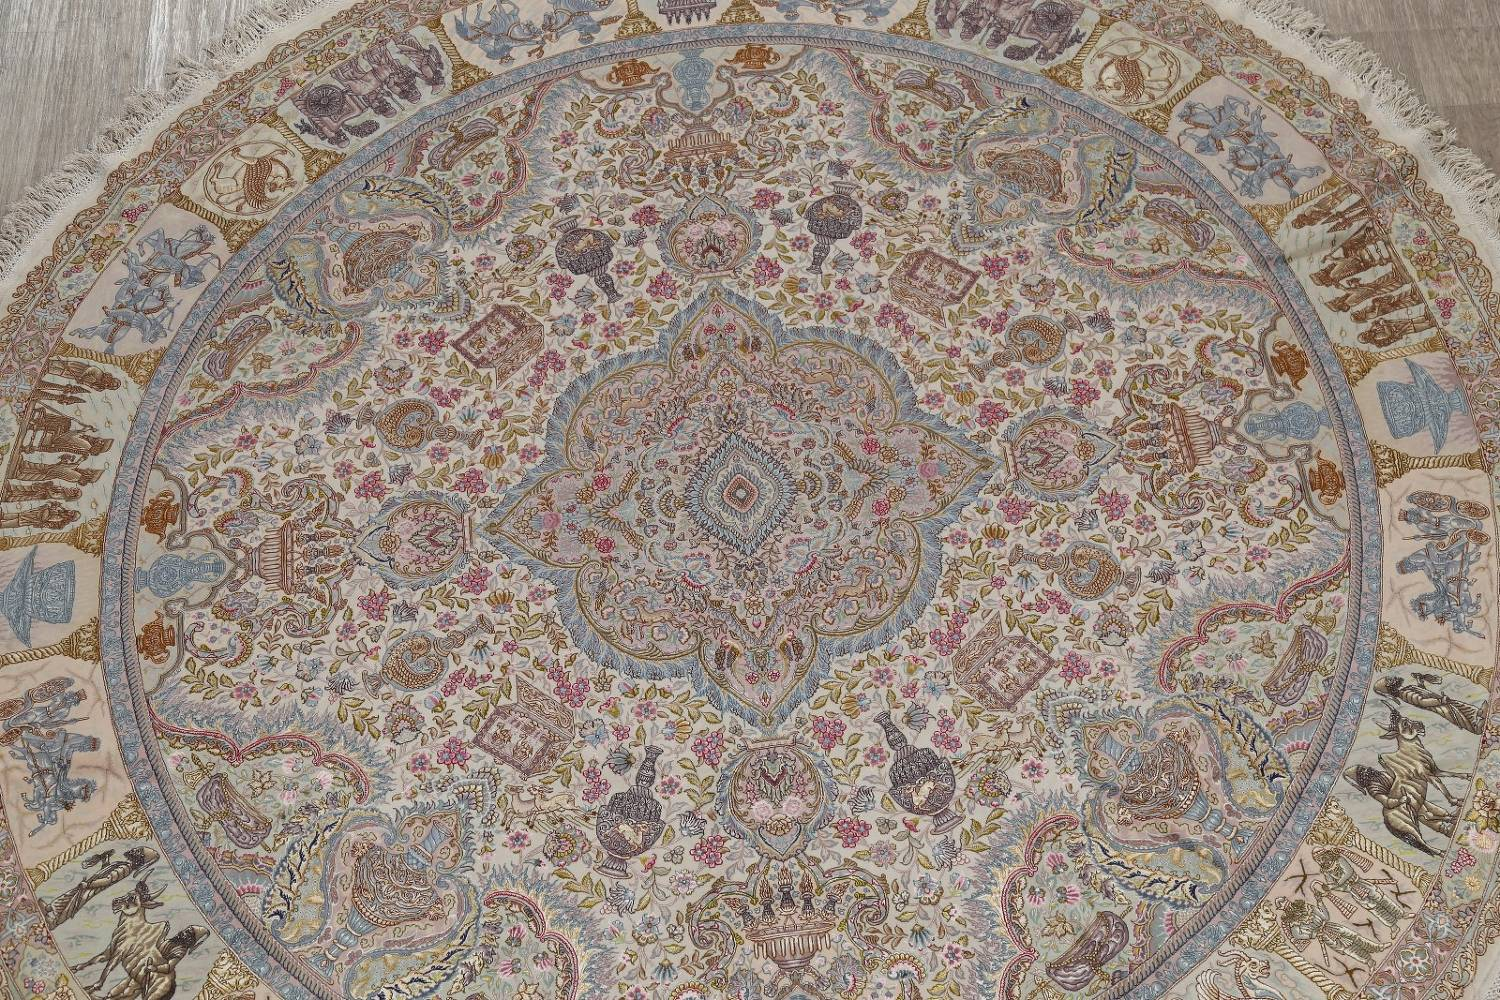 Antique Vegetable Dye Tabriz Persian Hand-Knotted 8x8 Wool Silk Round Rug image 3